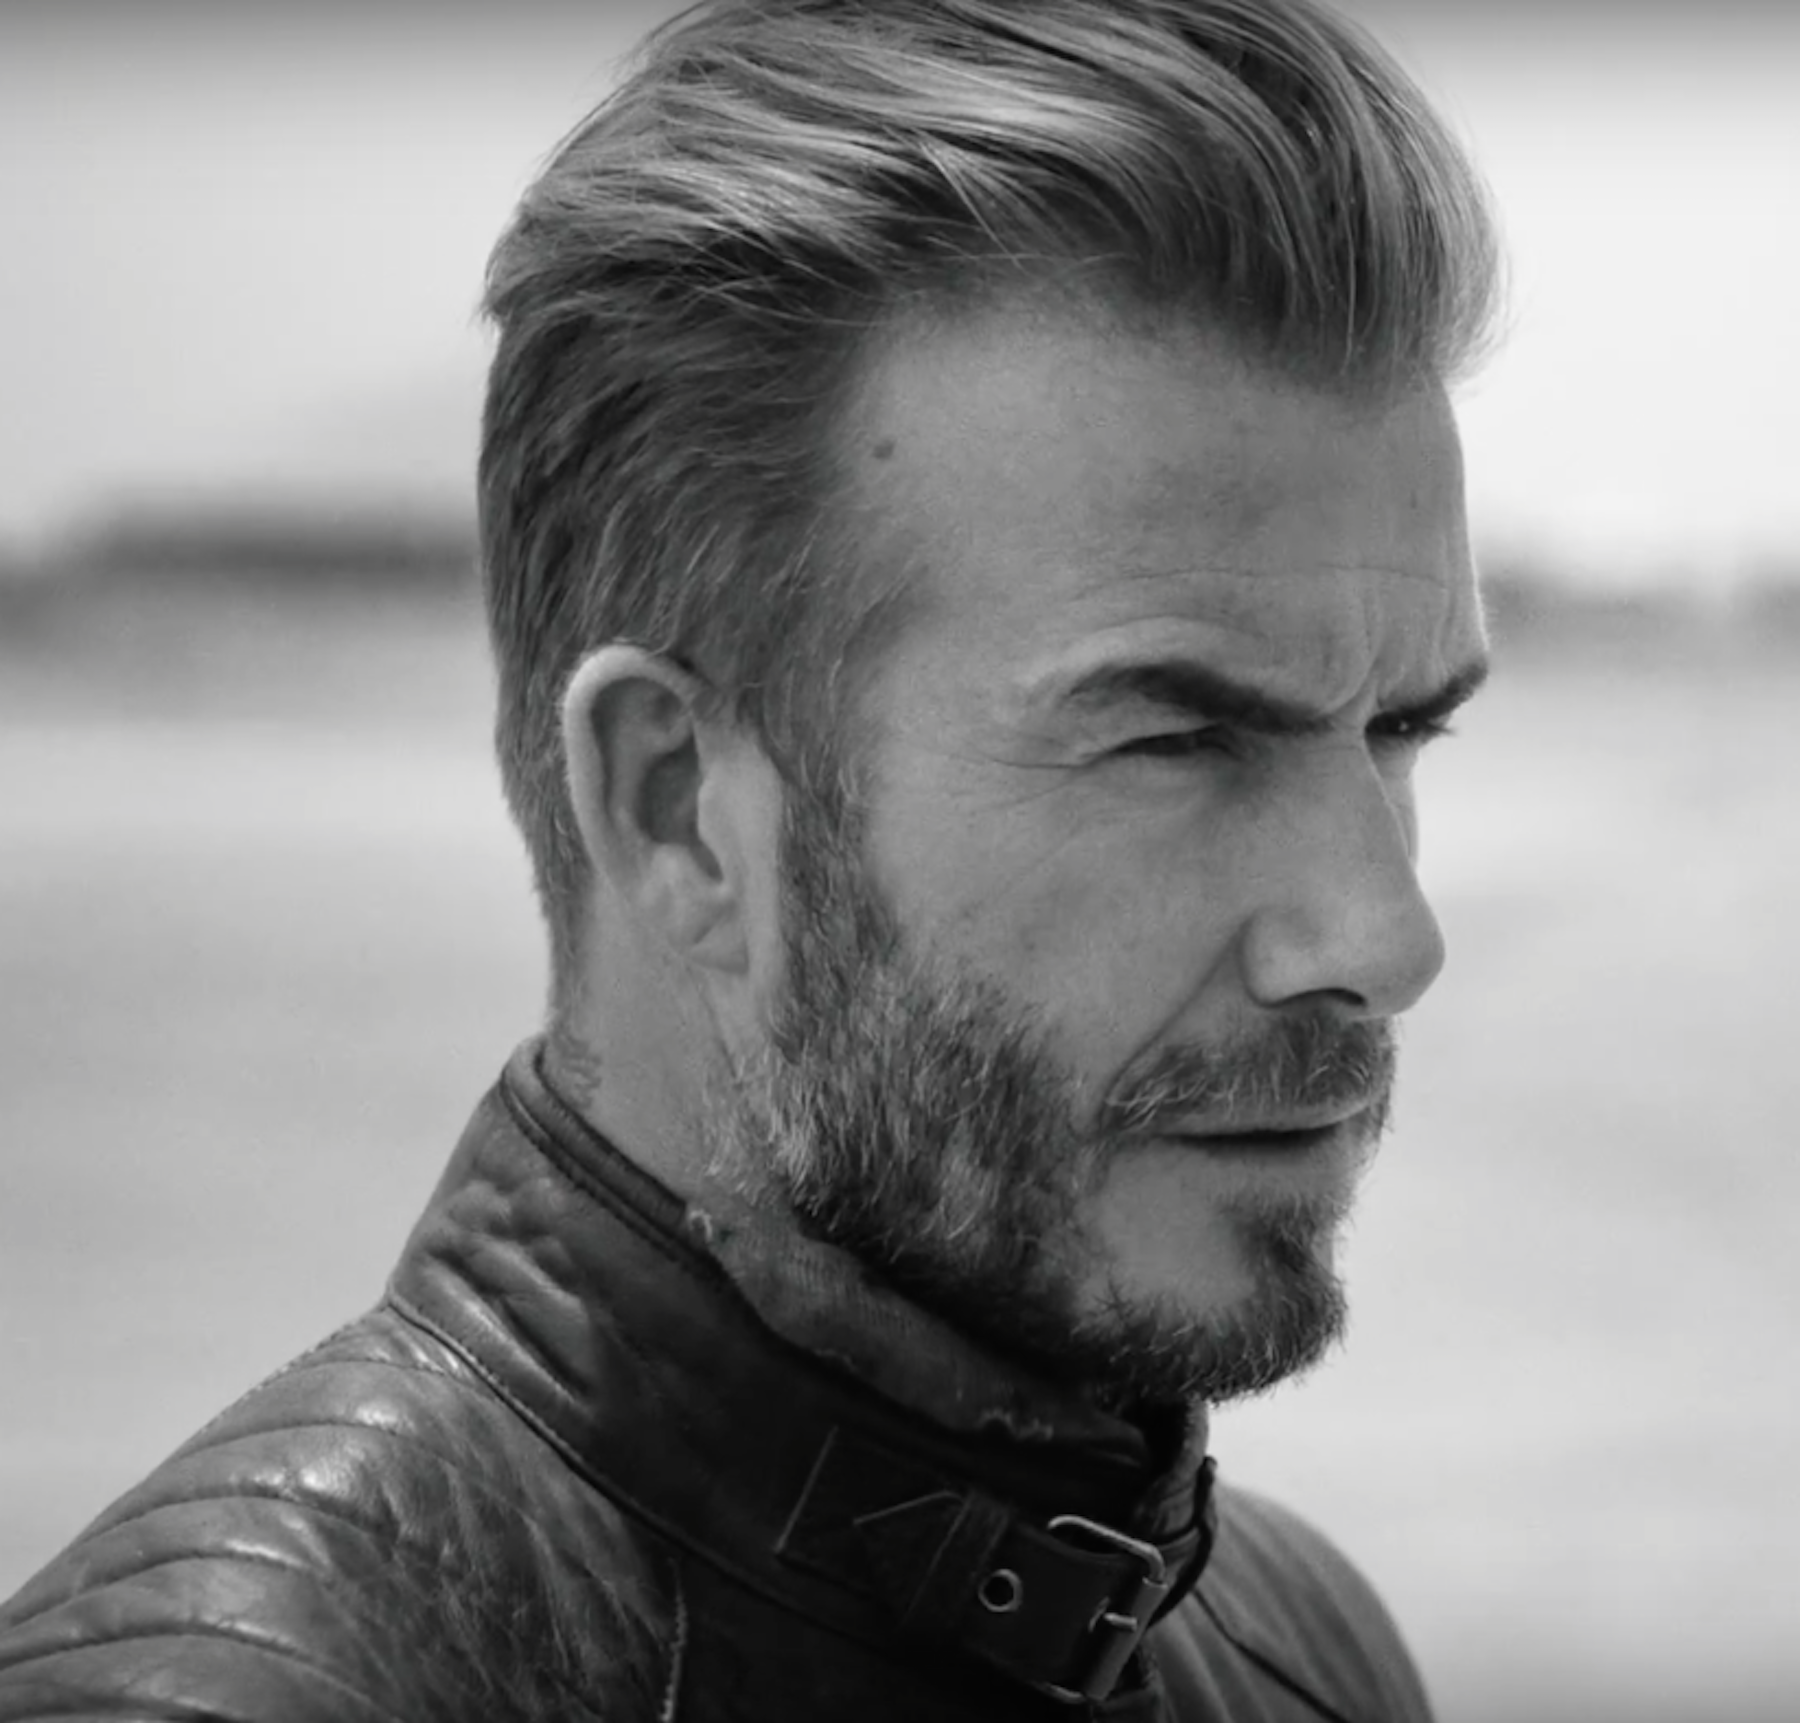 David beckham outlaws david beckham pinterest david - David beckham ...